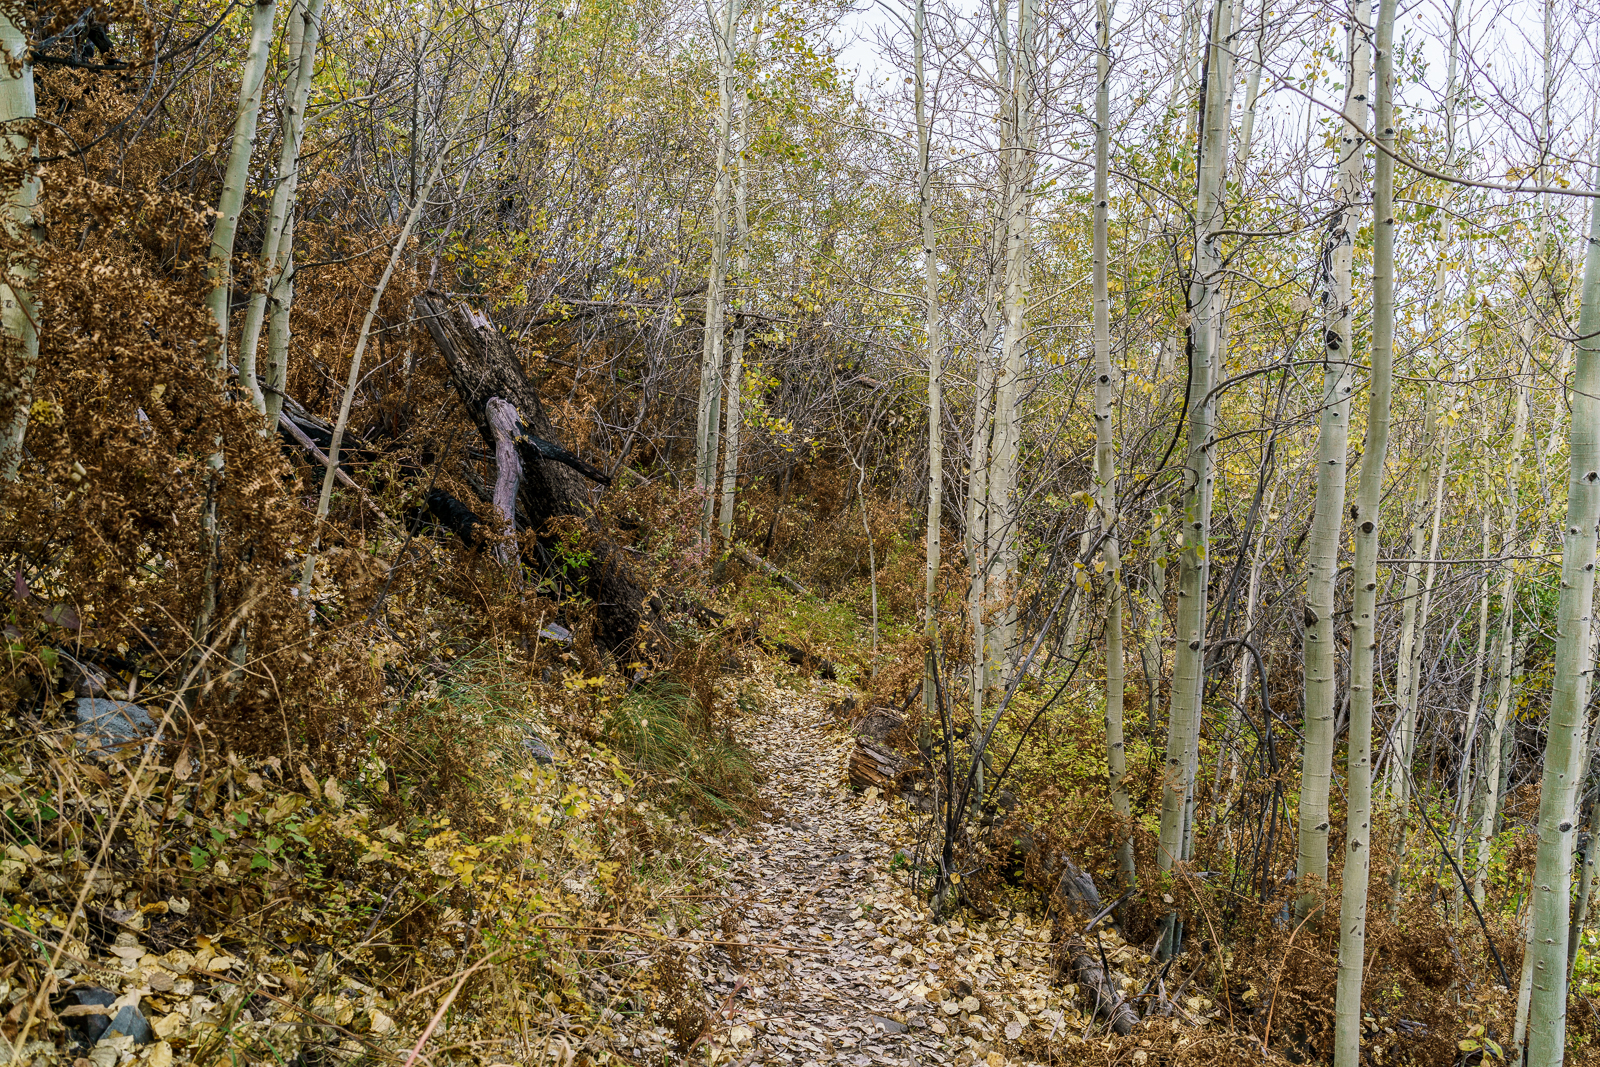 Bare Aspens near the top of the Red Ridge Trail. October 2016.